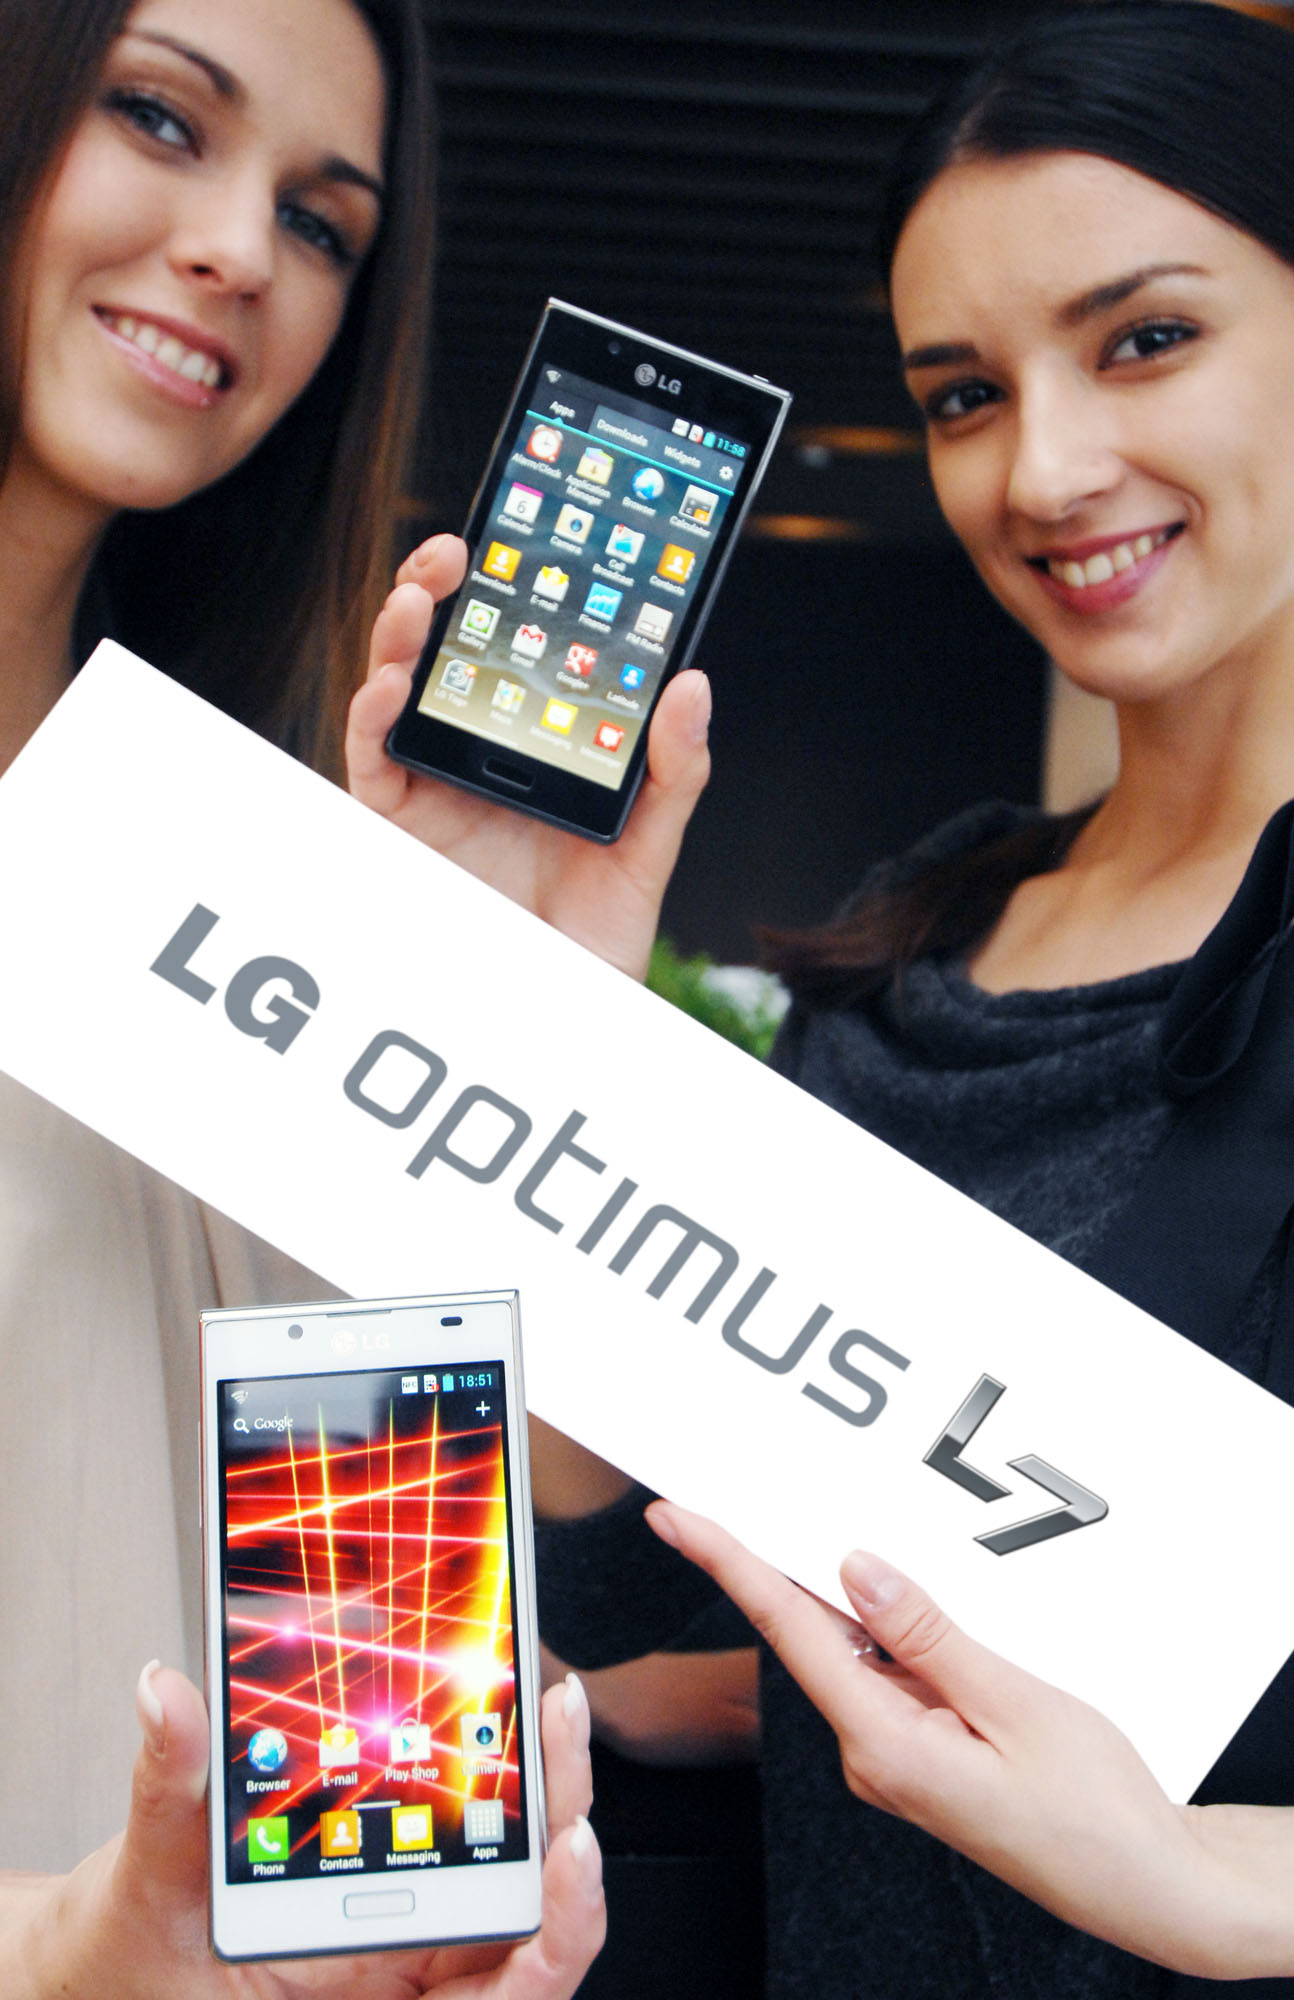 Another view of a model holding the white LG Optimus L7 while another holds the LG Optimus L7 and the LG Optimus L7 logo